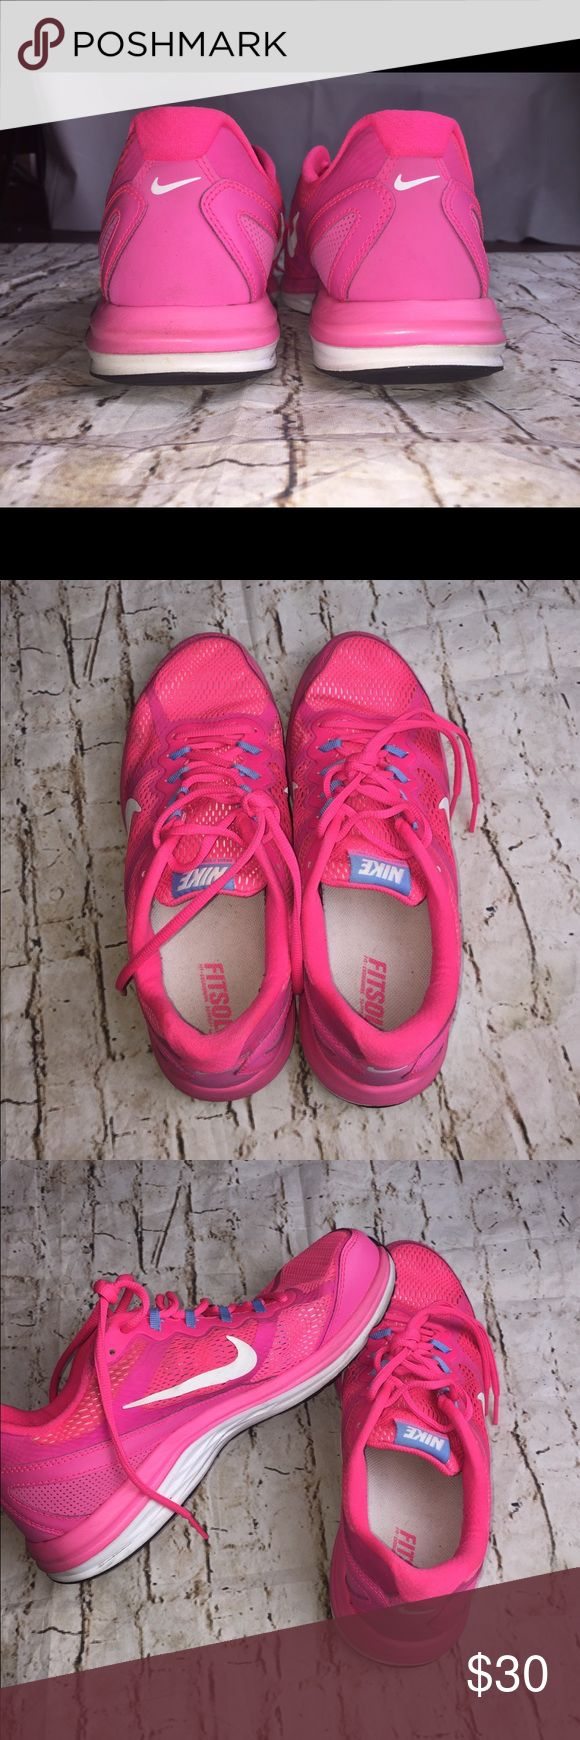 Women's Nike Dual Fusion Sneakers Beautiful pink Women's Nike dual fusion sneakers. Size 10. Does show little signs of wear but in overall good shape. Perfect for athletic use or everyday wear. Nike Shoes Athletic Shoes